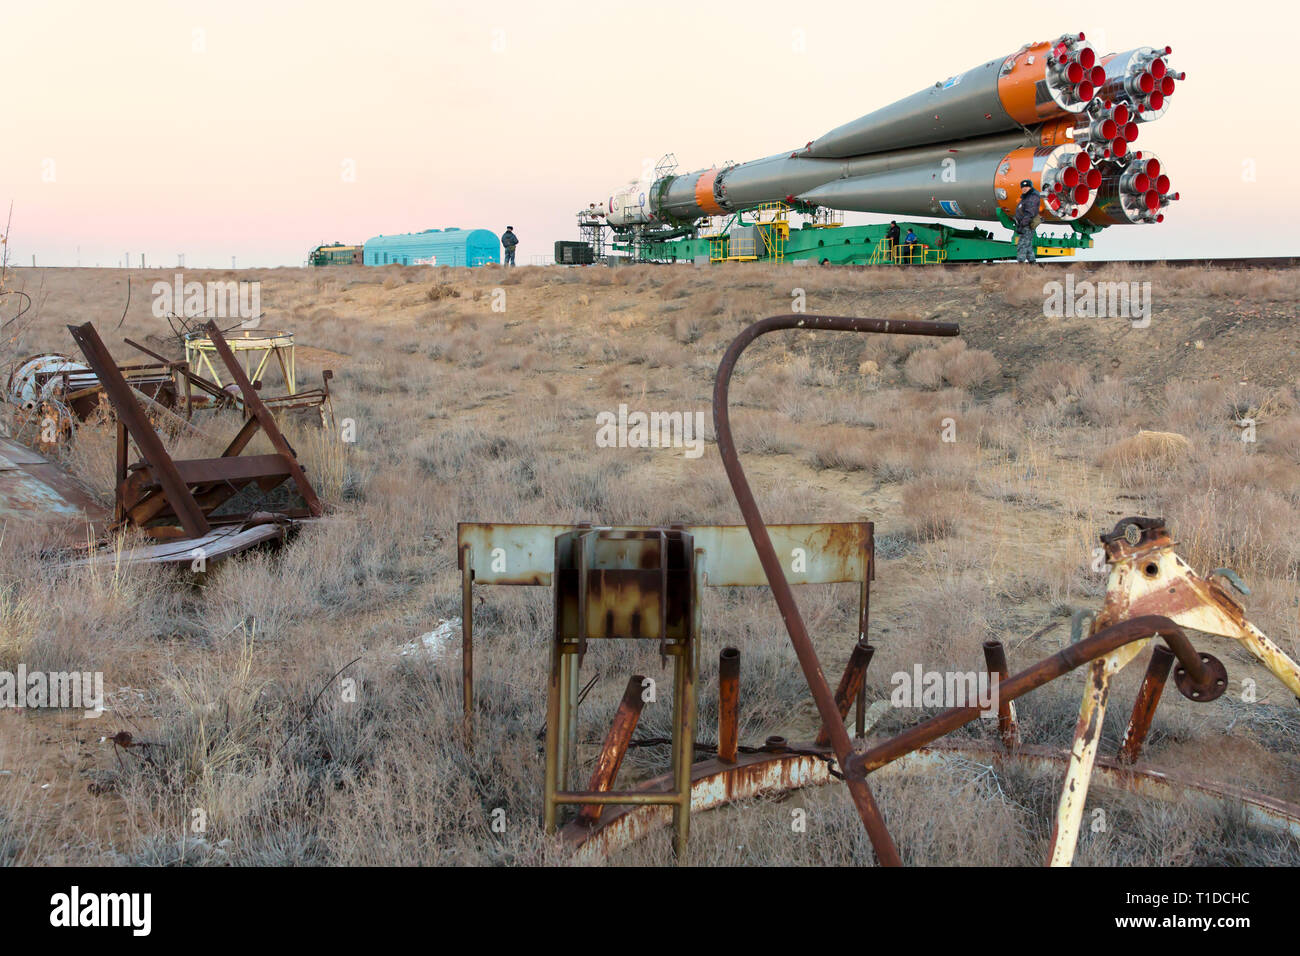 BAIKONUR - The Soyuz rocket MS-03 is beeing rolled out by train to the Gagarin Start launchpad on monday. It will be launched on friday morning. - Stock Image